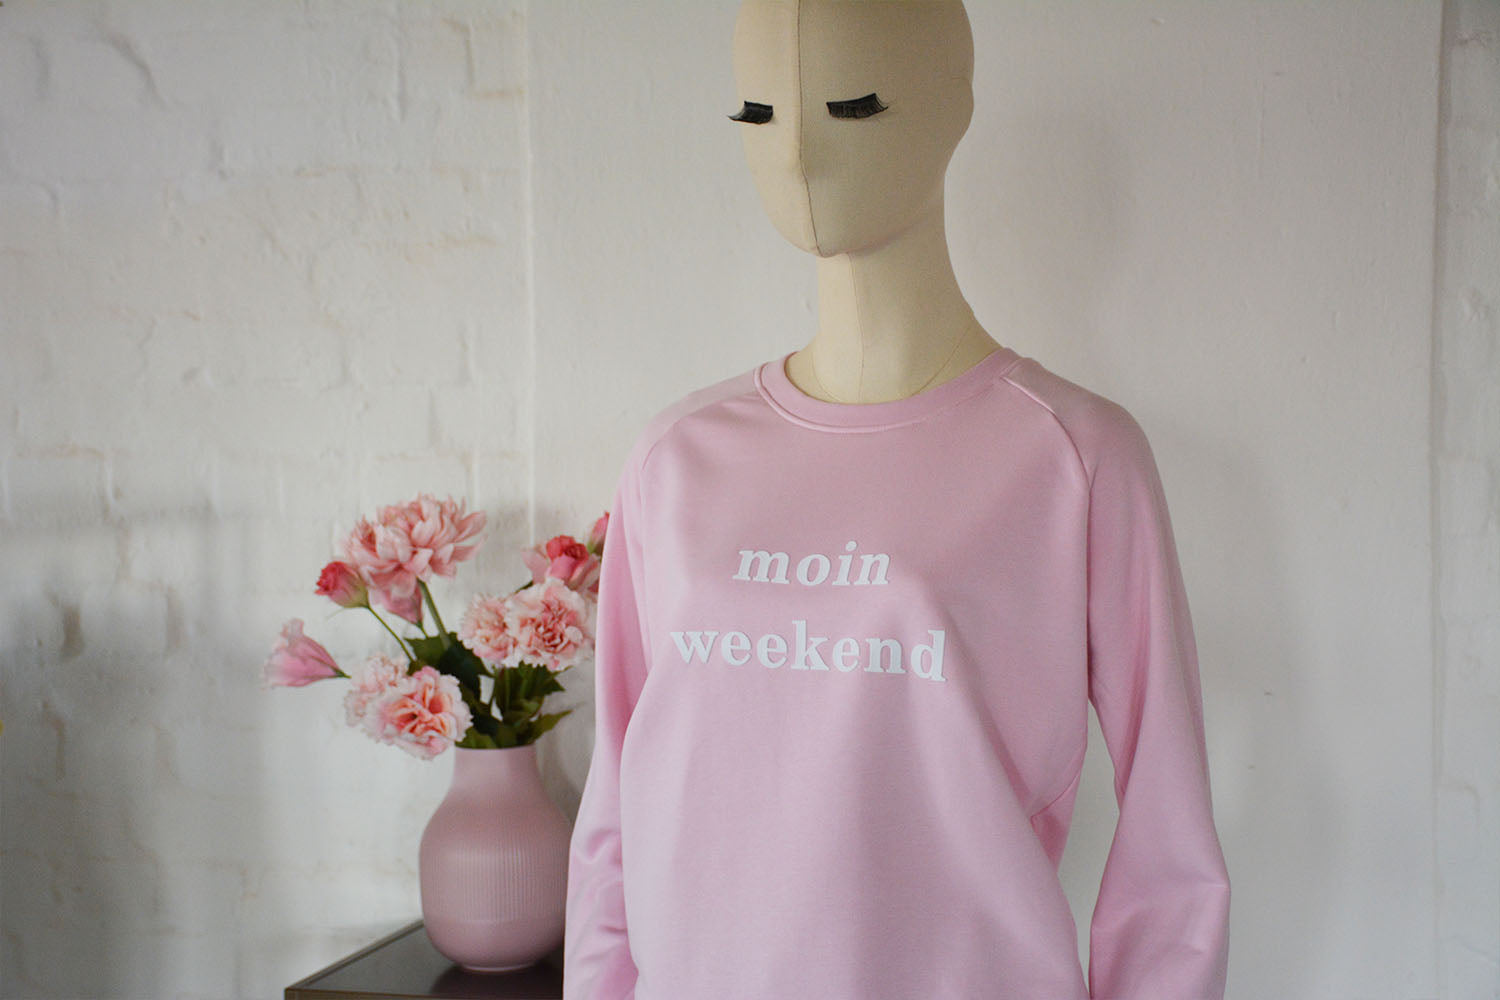 moin weekend Sweater